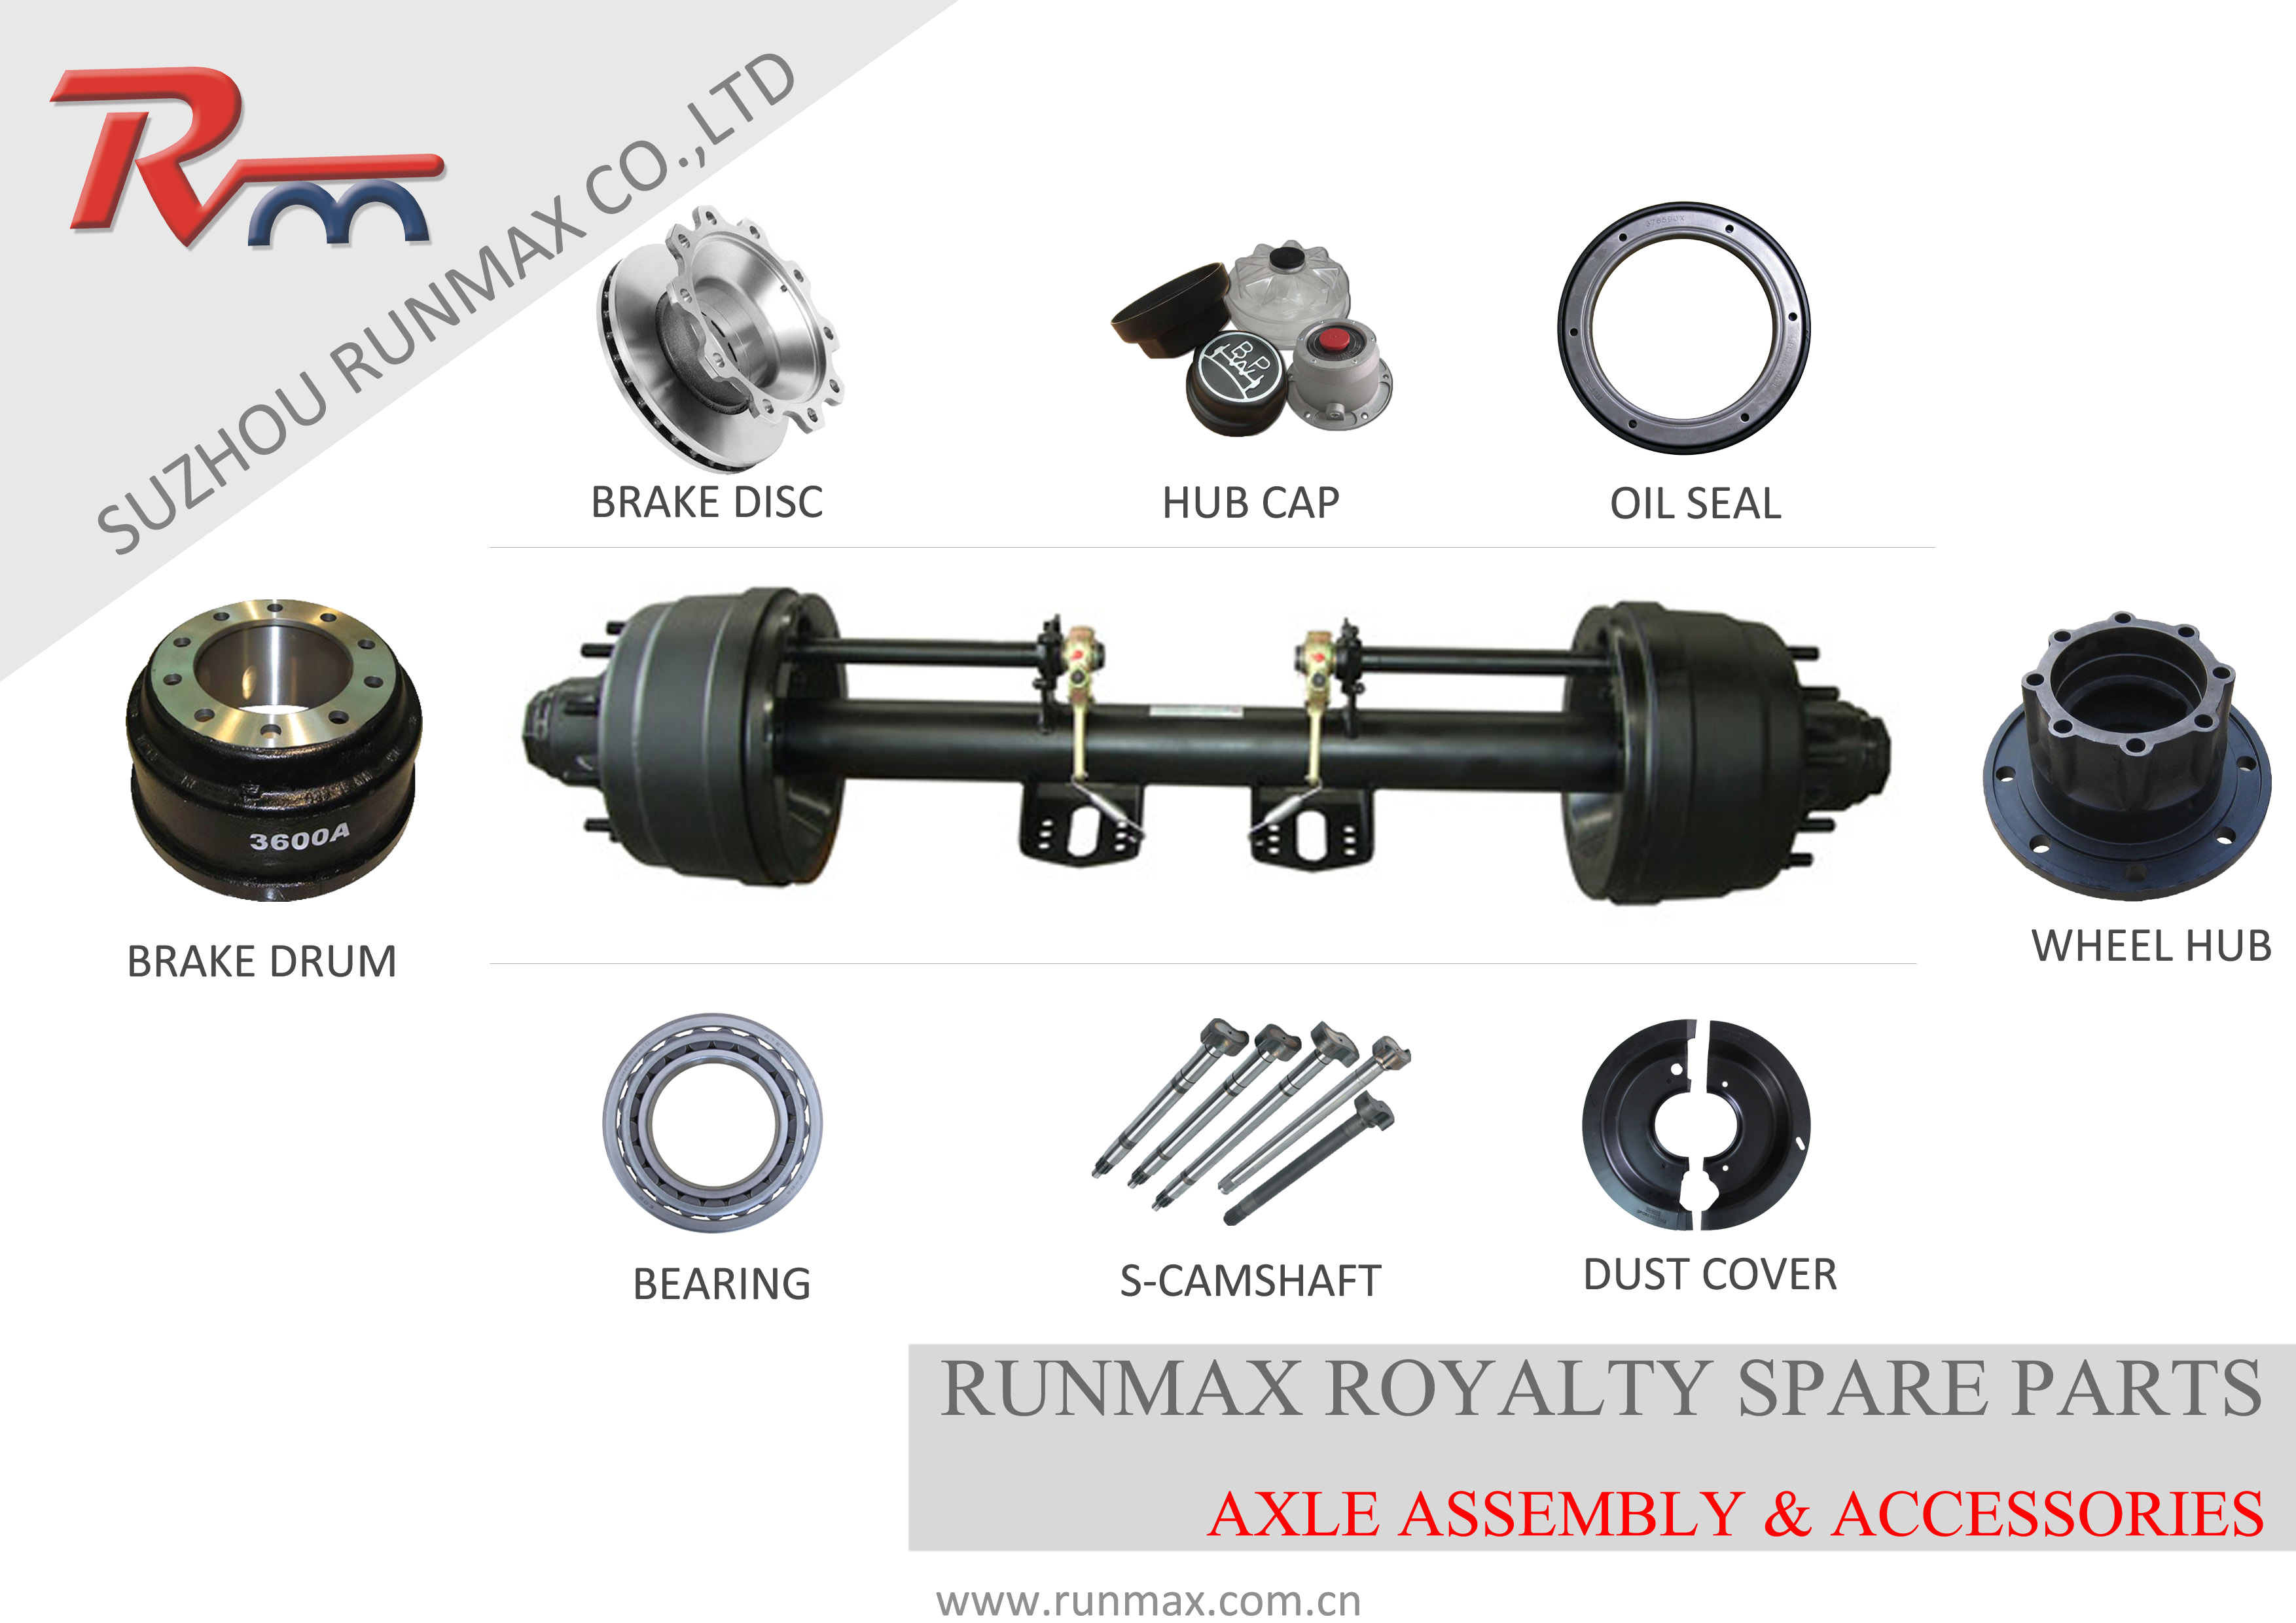 RUNMAX AXLE ASSEMBLY AND ACCESSORIES